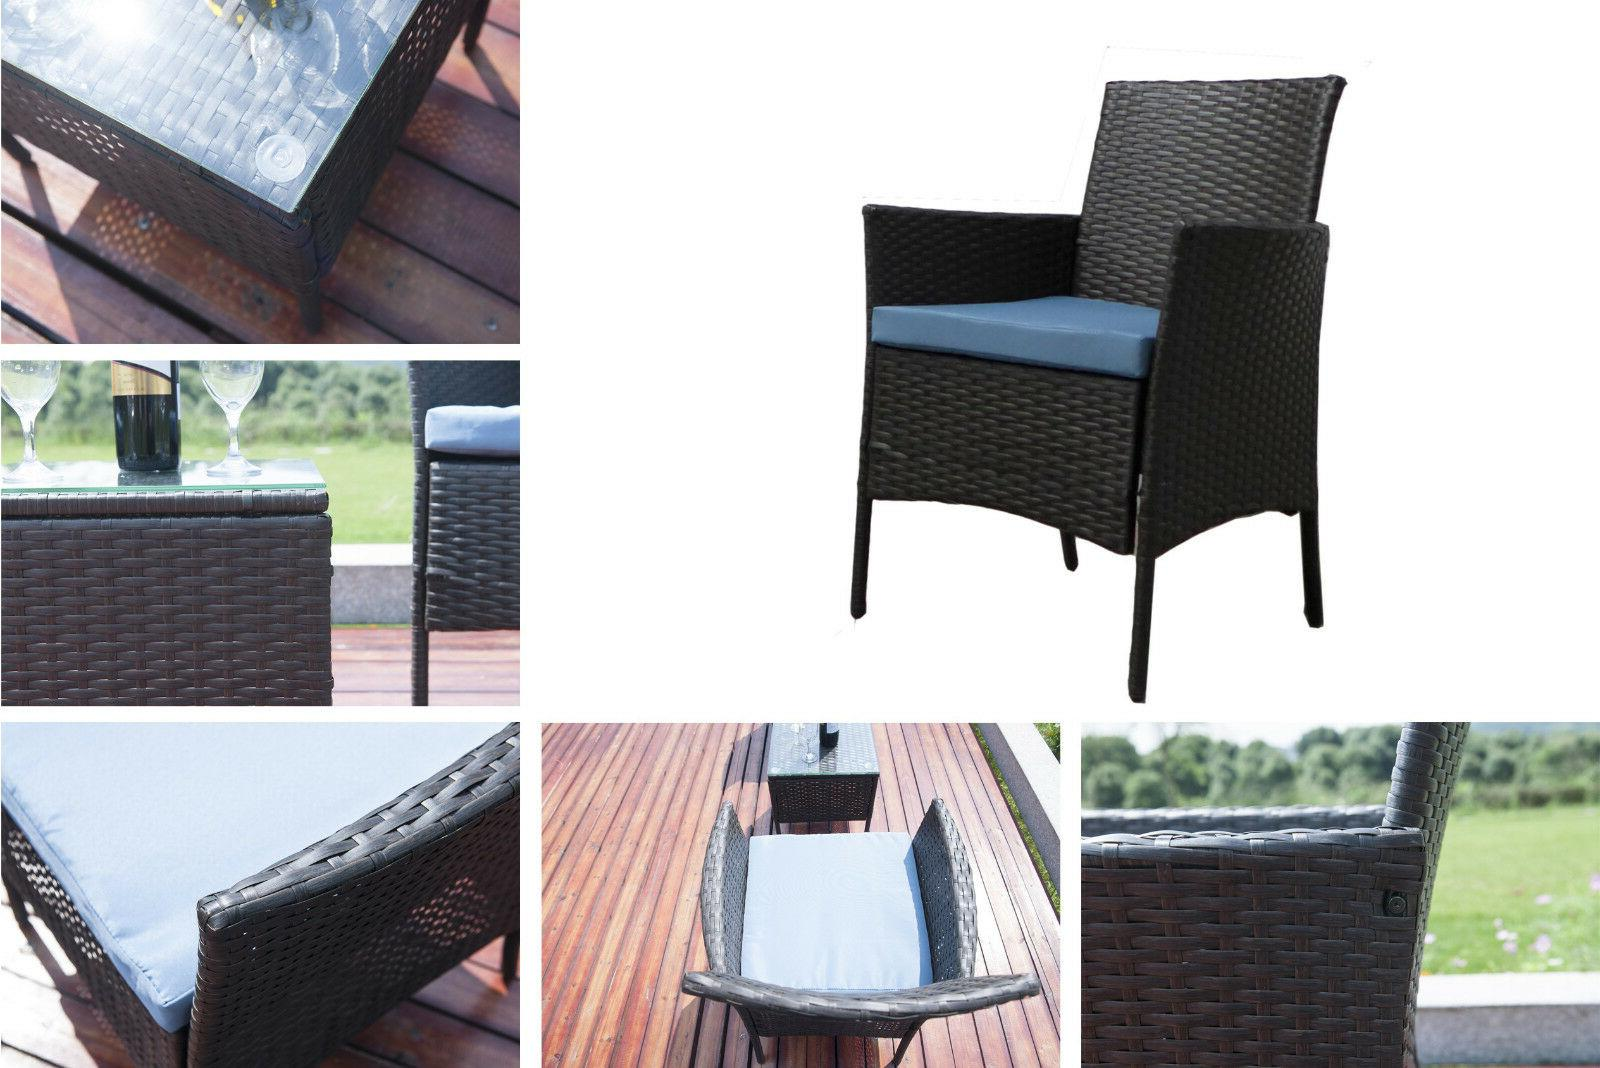 Patio Furniture Sectional Set Outdoor Wicker Large Seat